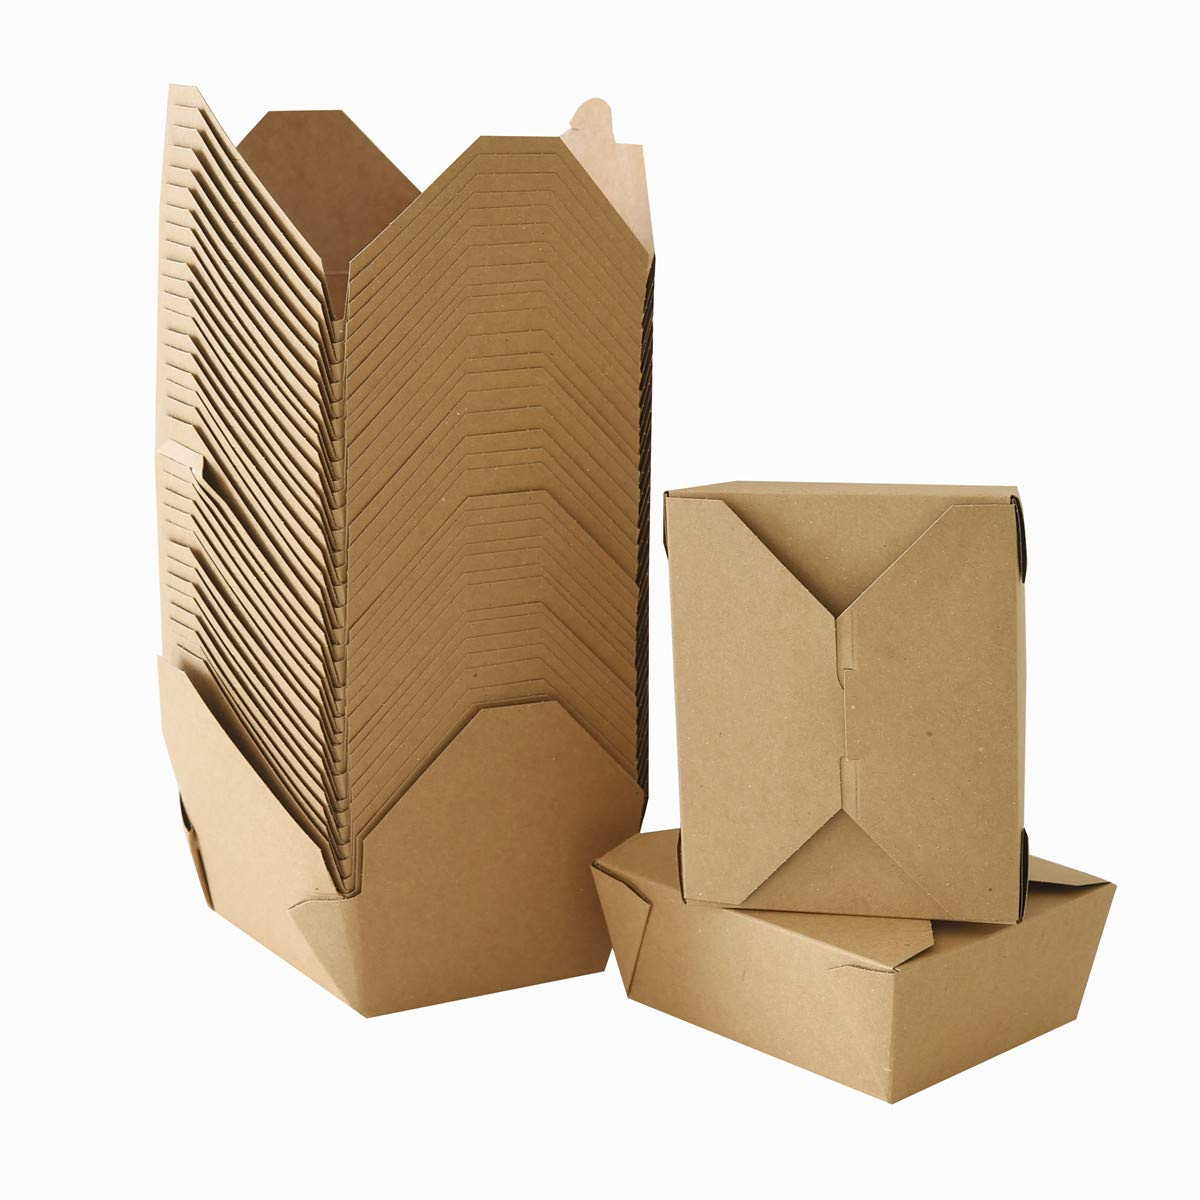 Take Out Boxes Chinese Take Out Containers 40 Pack Microwaveable Folding Natural Kraft Food Box Meal Prep Containers for Food Take Out Boxes Ideal Leak and Grease Resistant for Restaurants (Brown, 45 Oz)